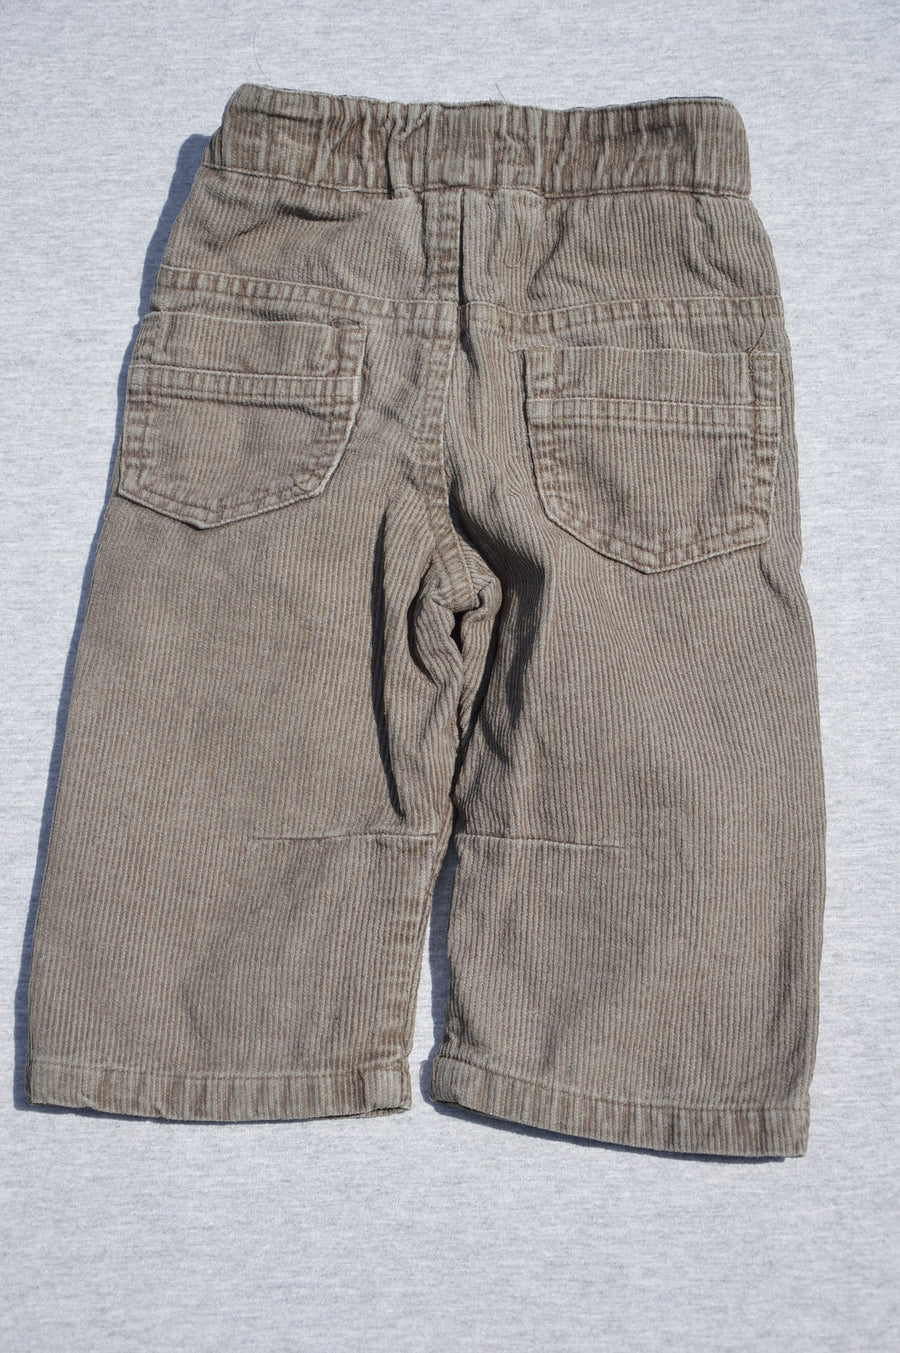 Little by Little brown corduroy pants, size 3-6m